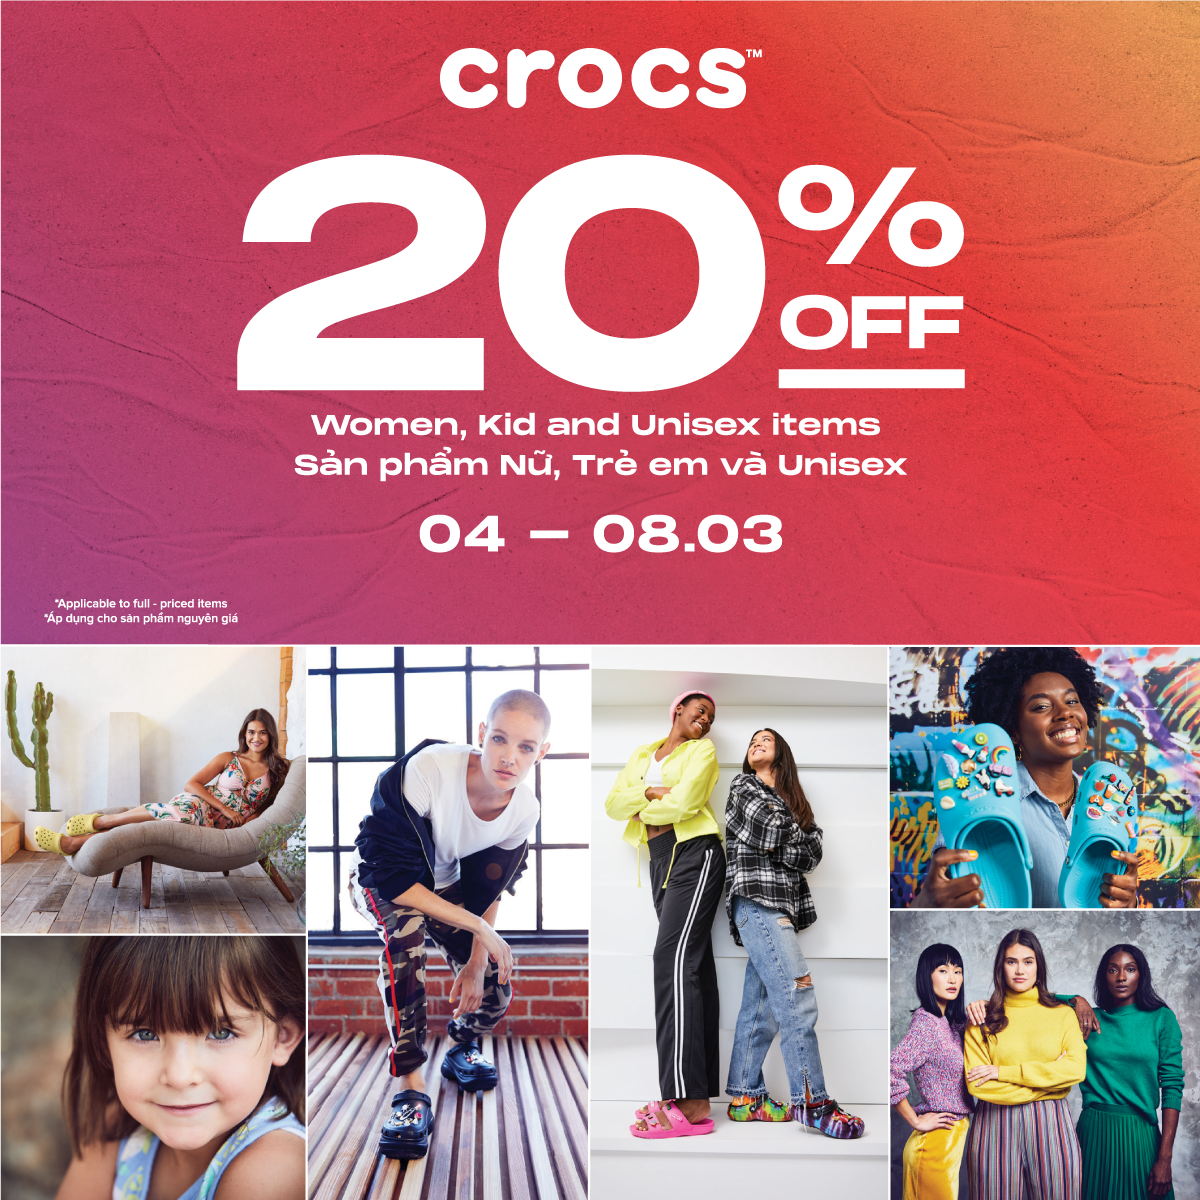 HAPPY WOMEN'S DAY WITH CROCS ♥️